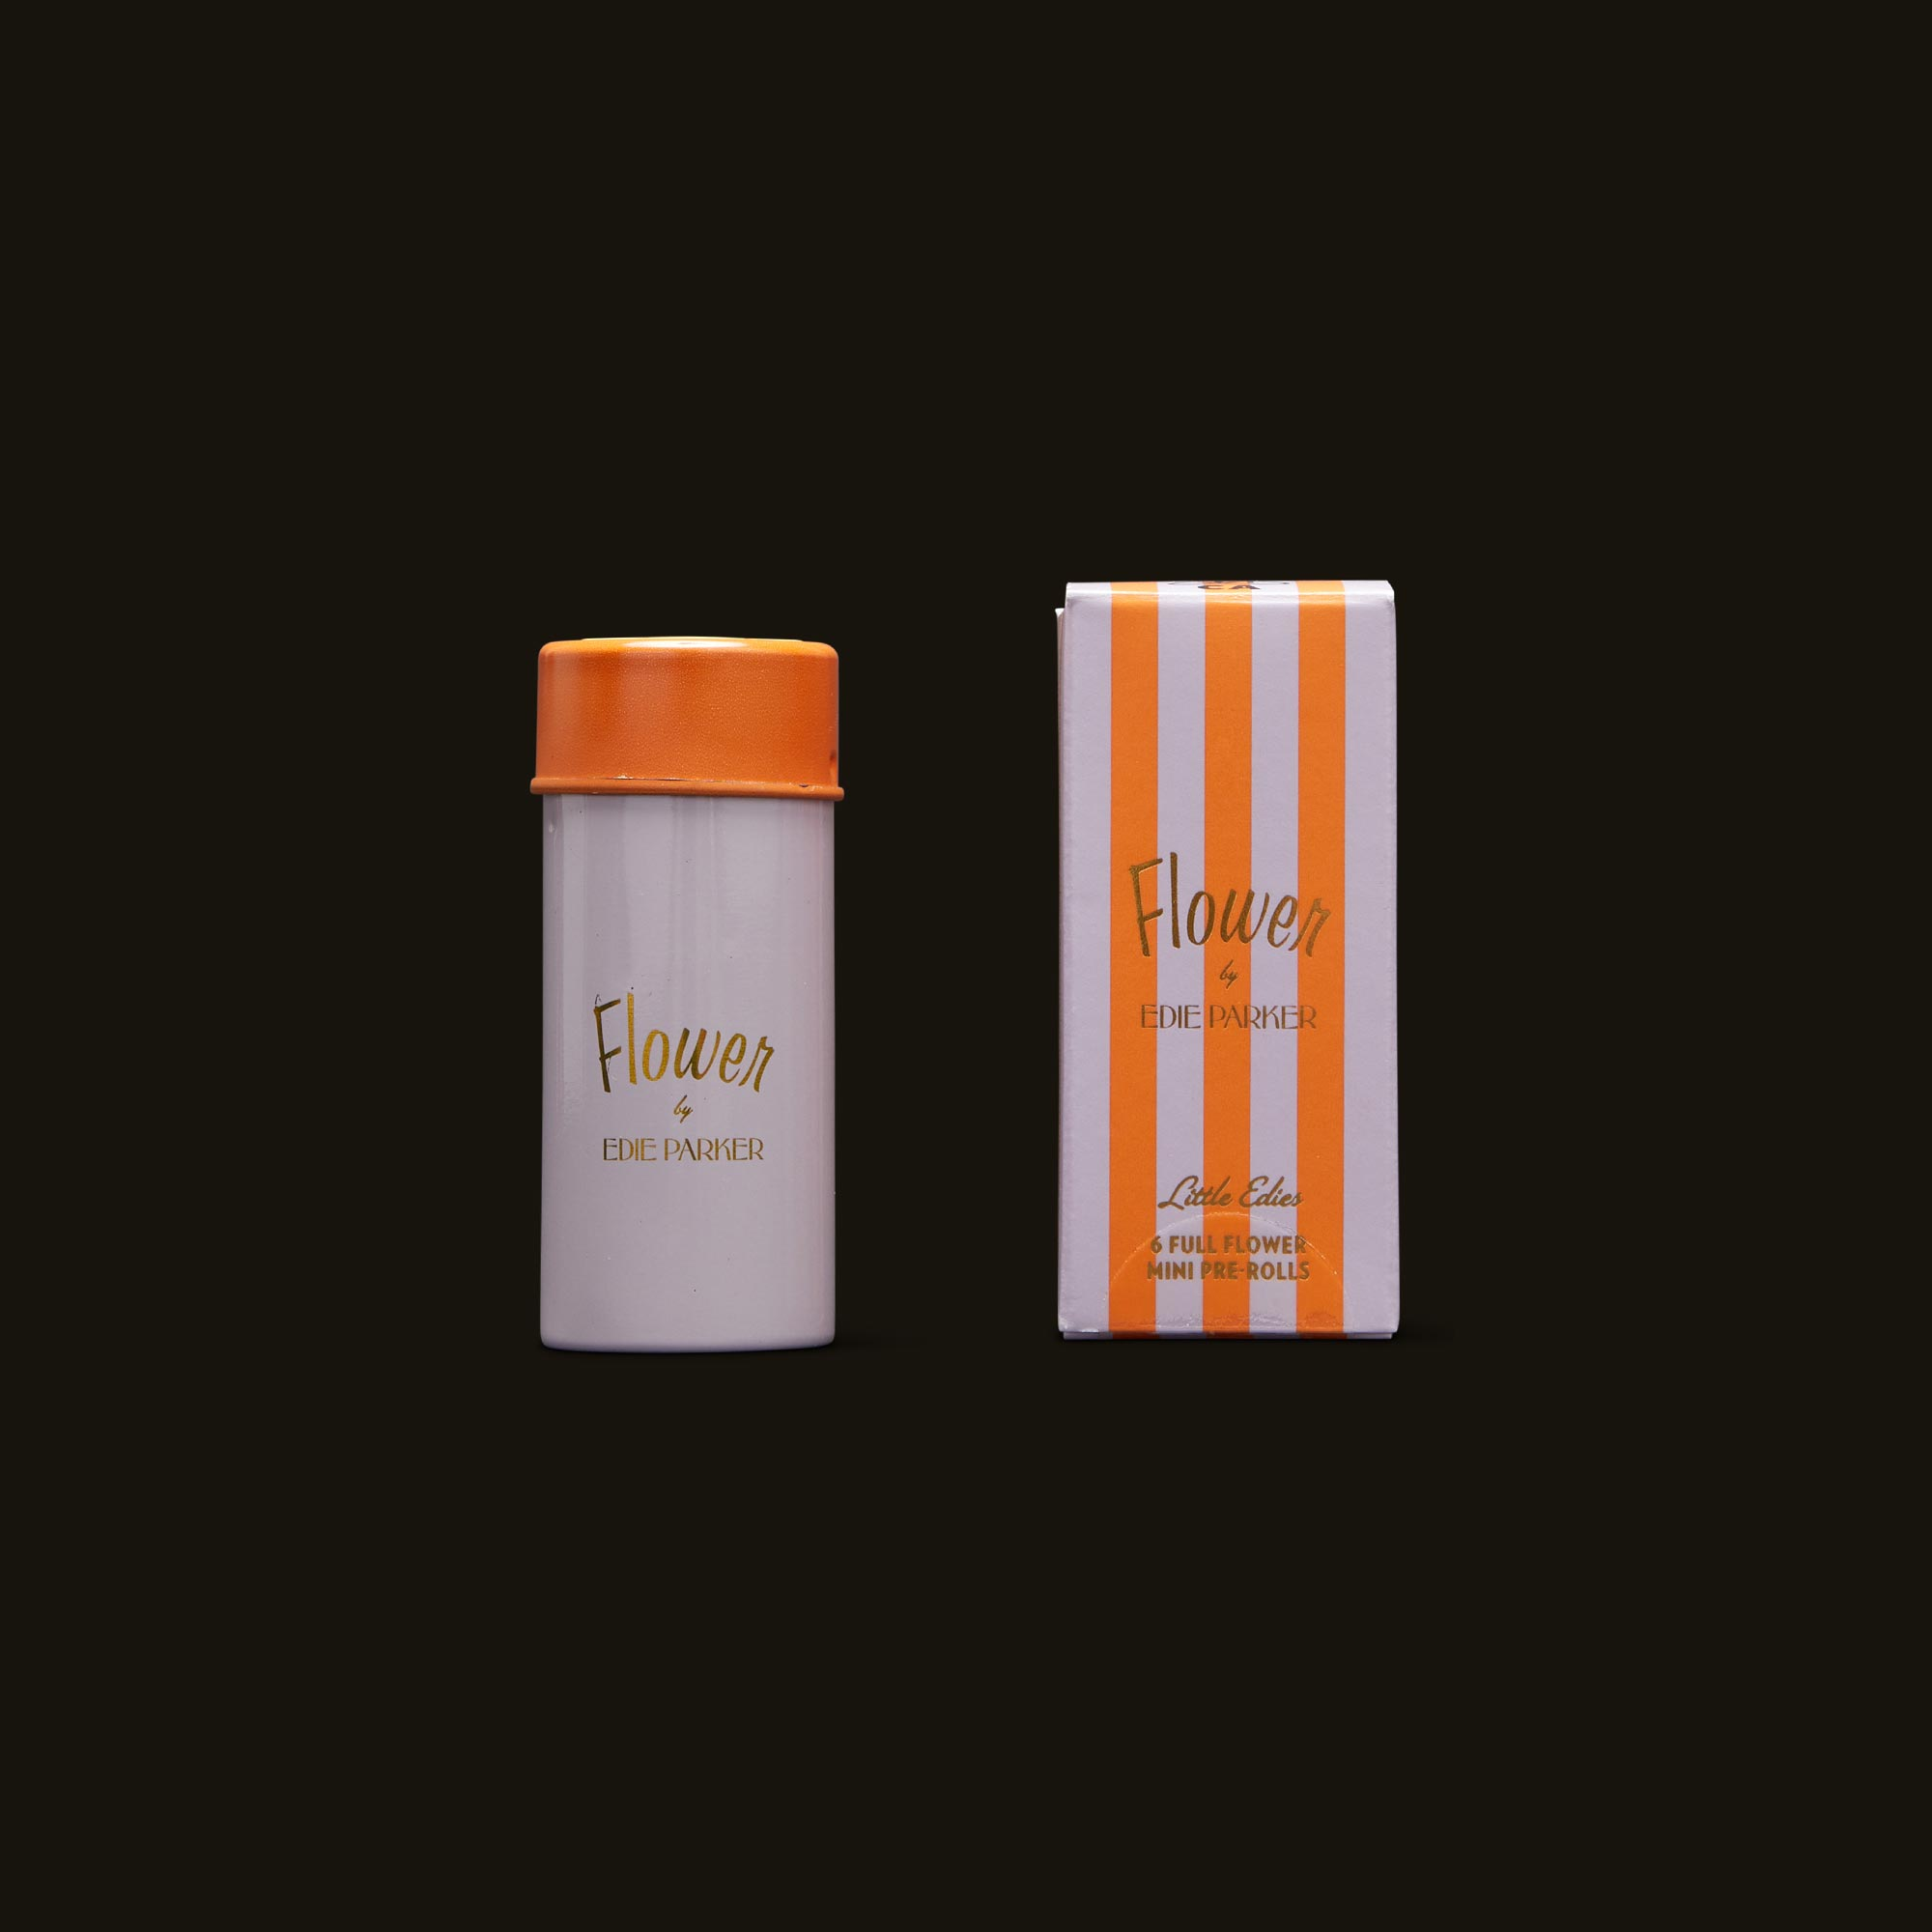 Flower by Edie Parker Indica Little Edie's Mini Pre-Rolls Container and Packaging